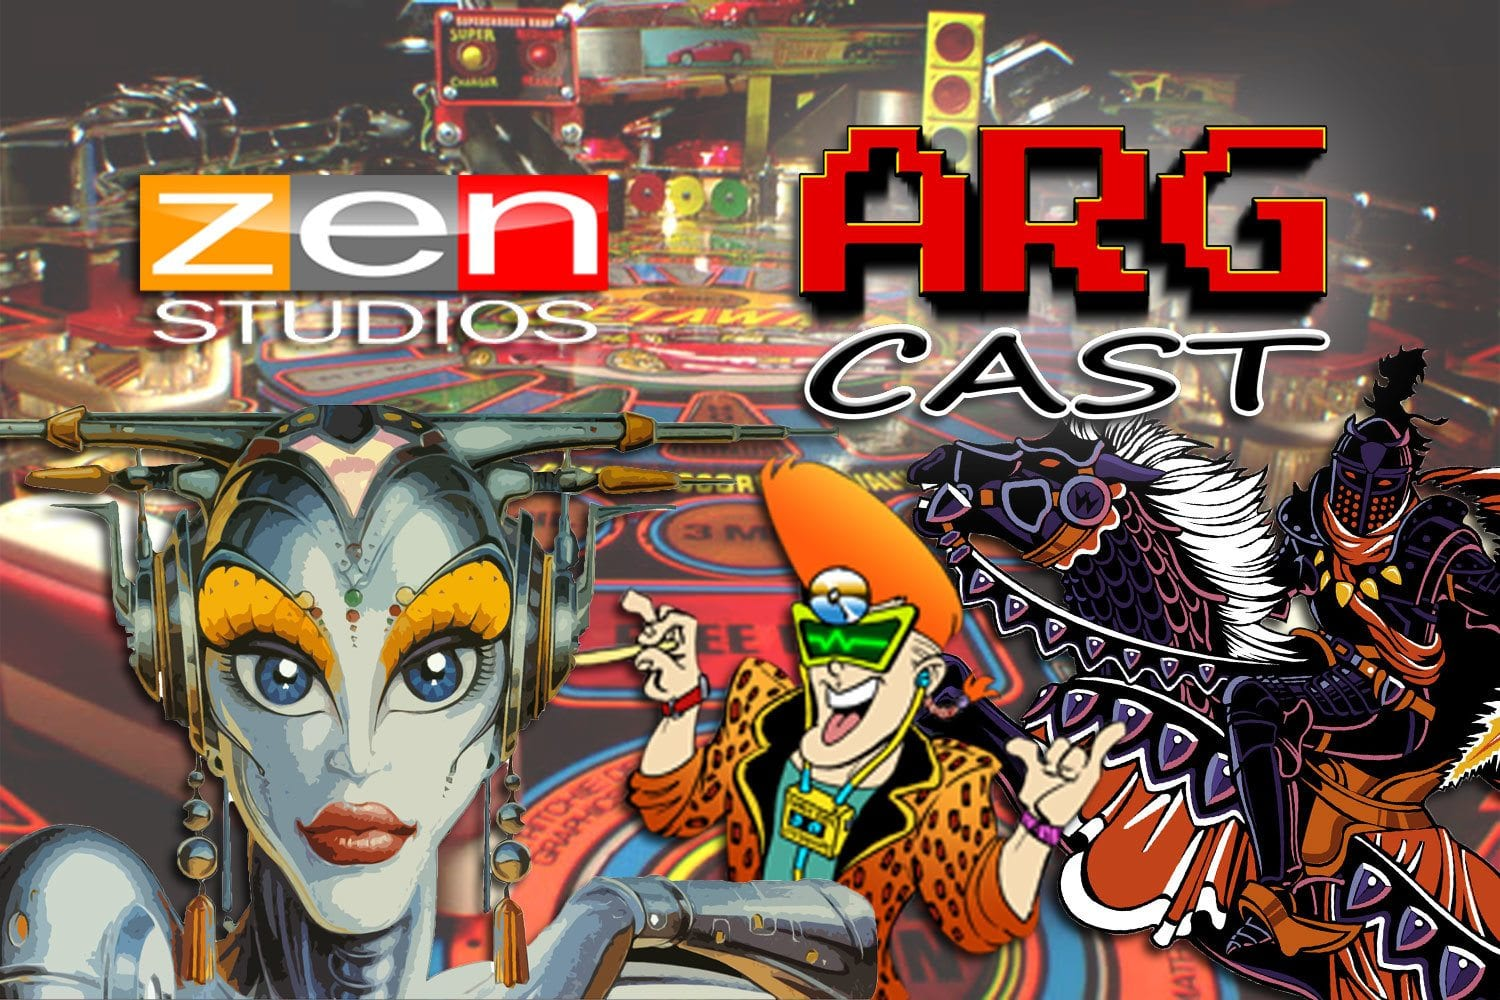 ARGcast #83: Shooting Pinball with Mel Kirk of Zen Studios